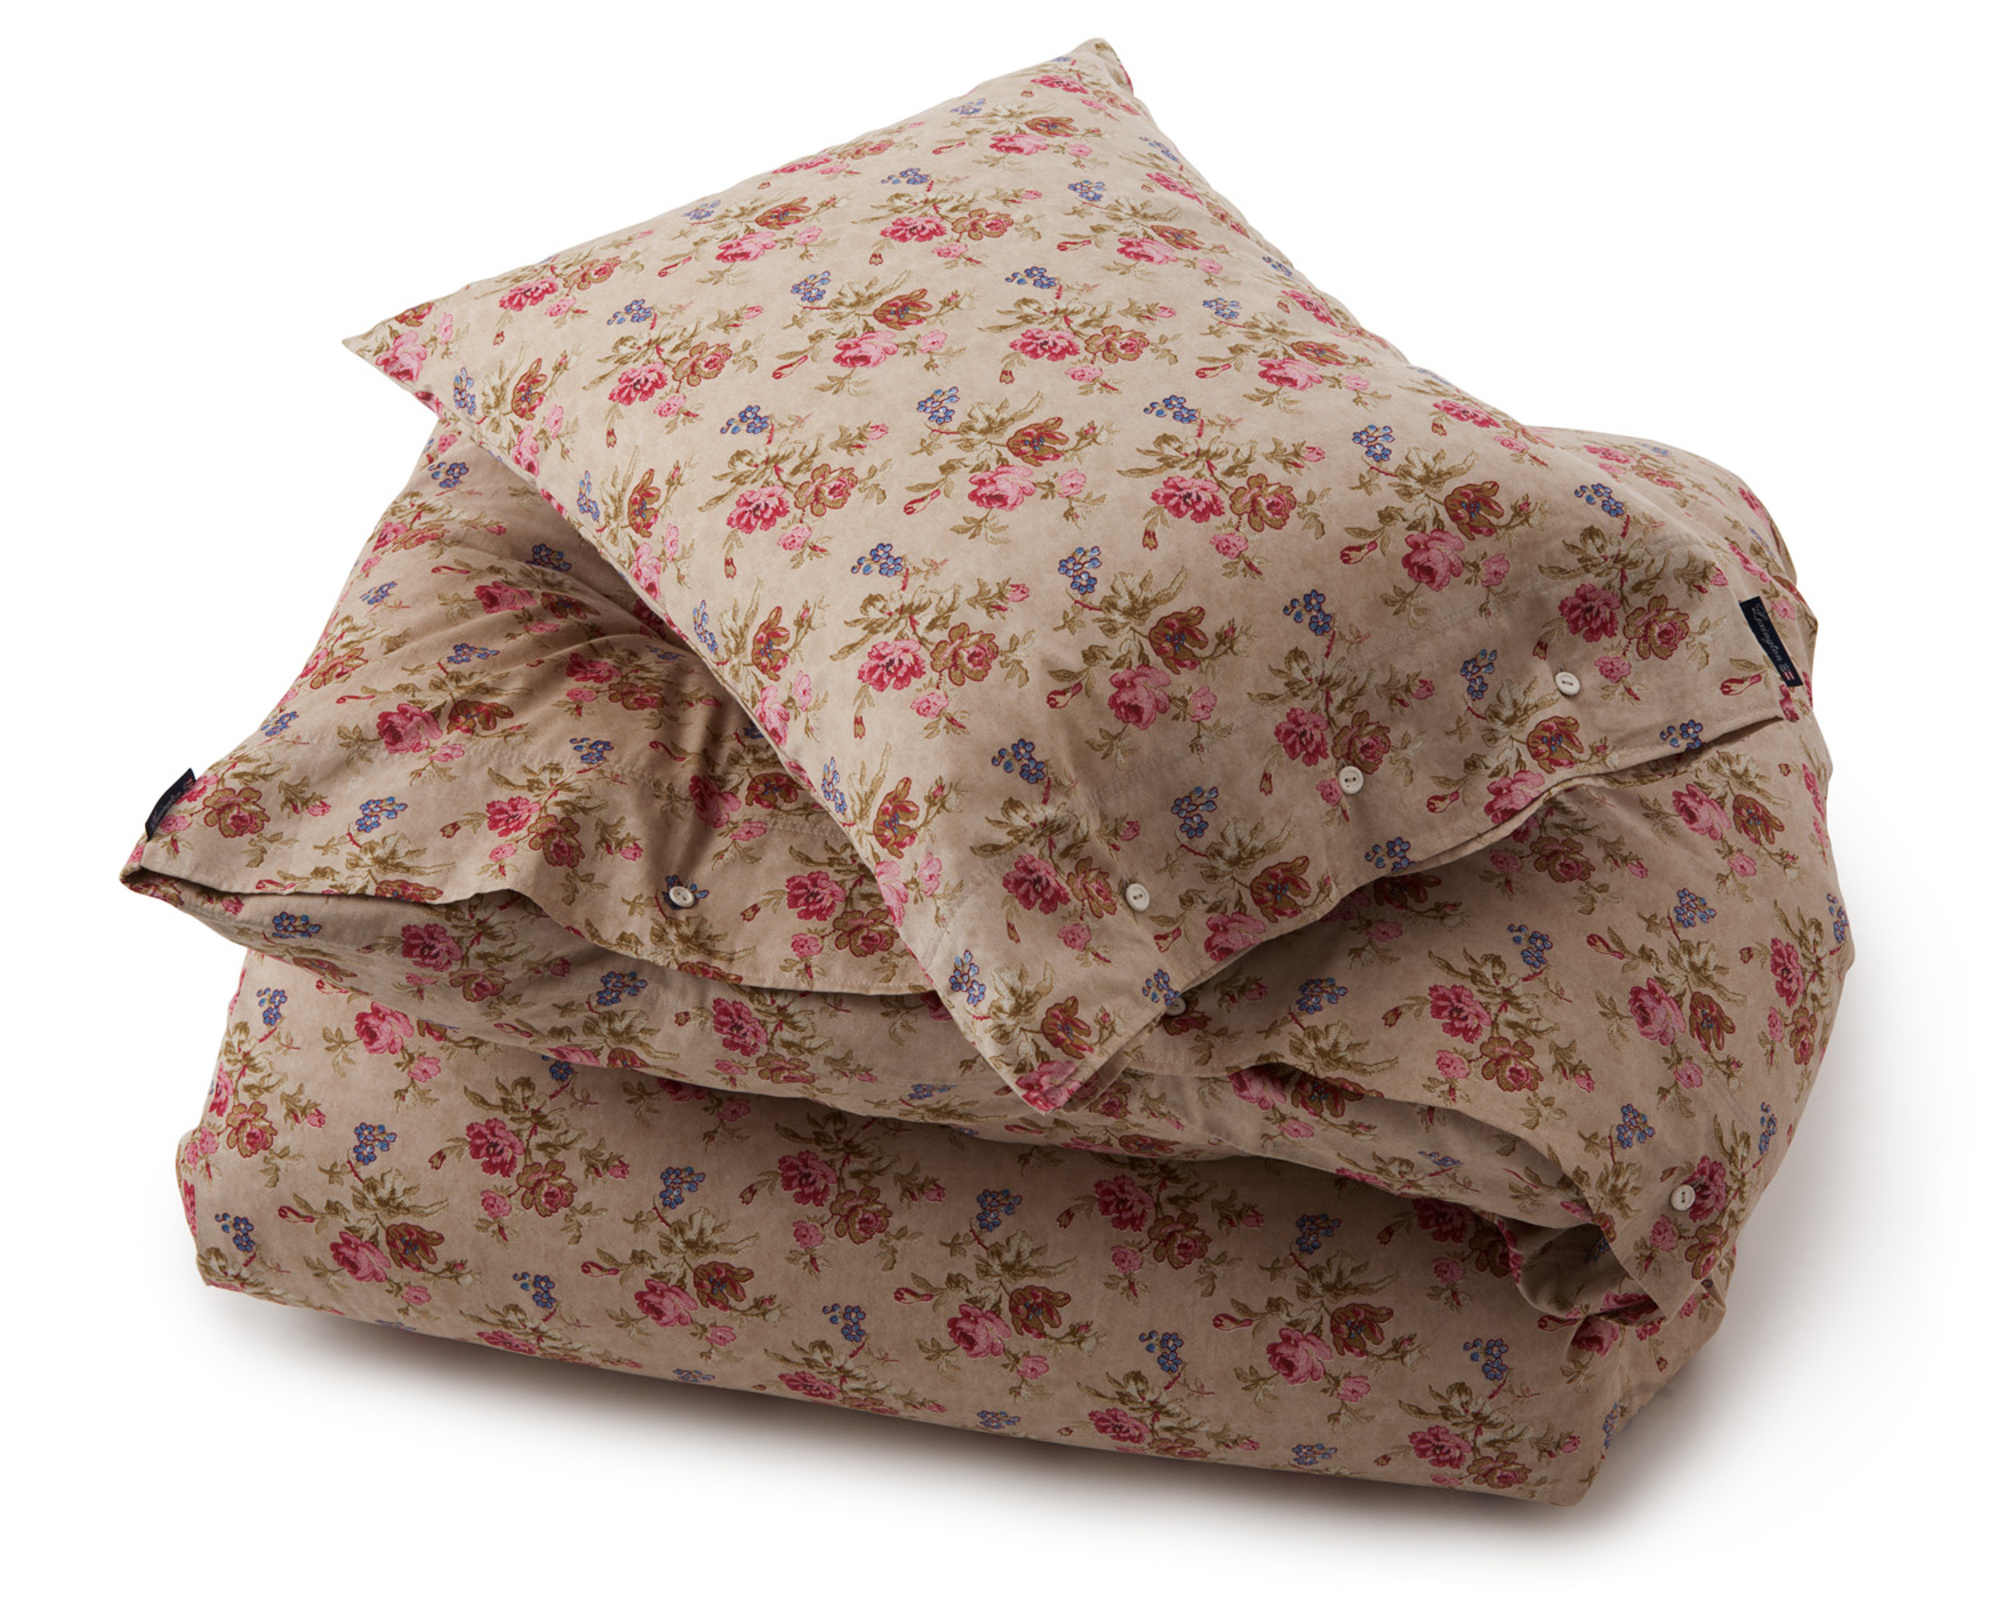 City Floral Sateen Flat Sheet